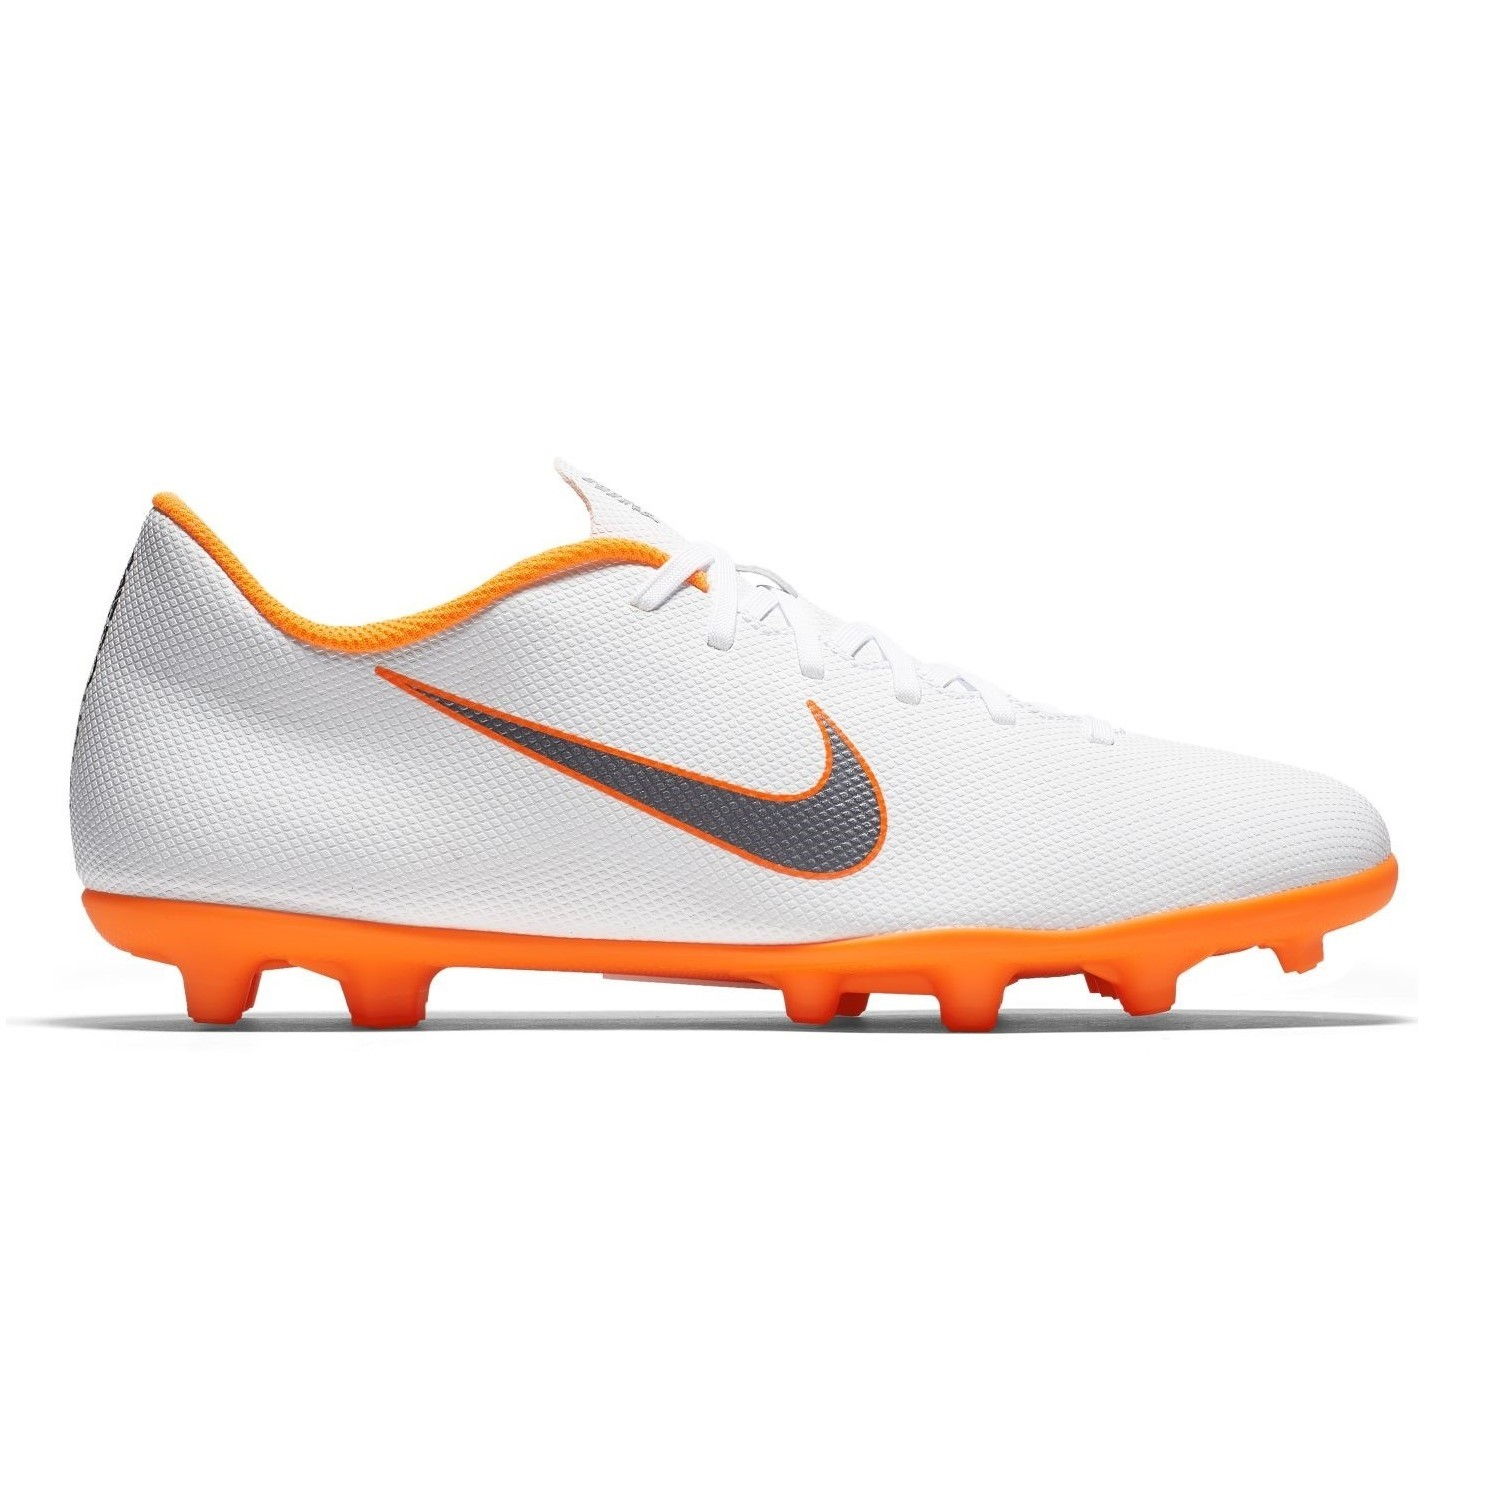 quality design 39460 8bd00 Nike Mercurial Vapor XII Club FG/MG - Mens Football Boots - White/Metallic